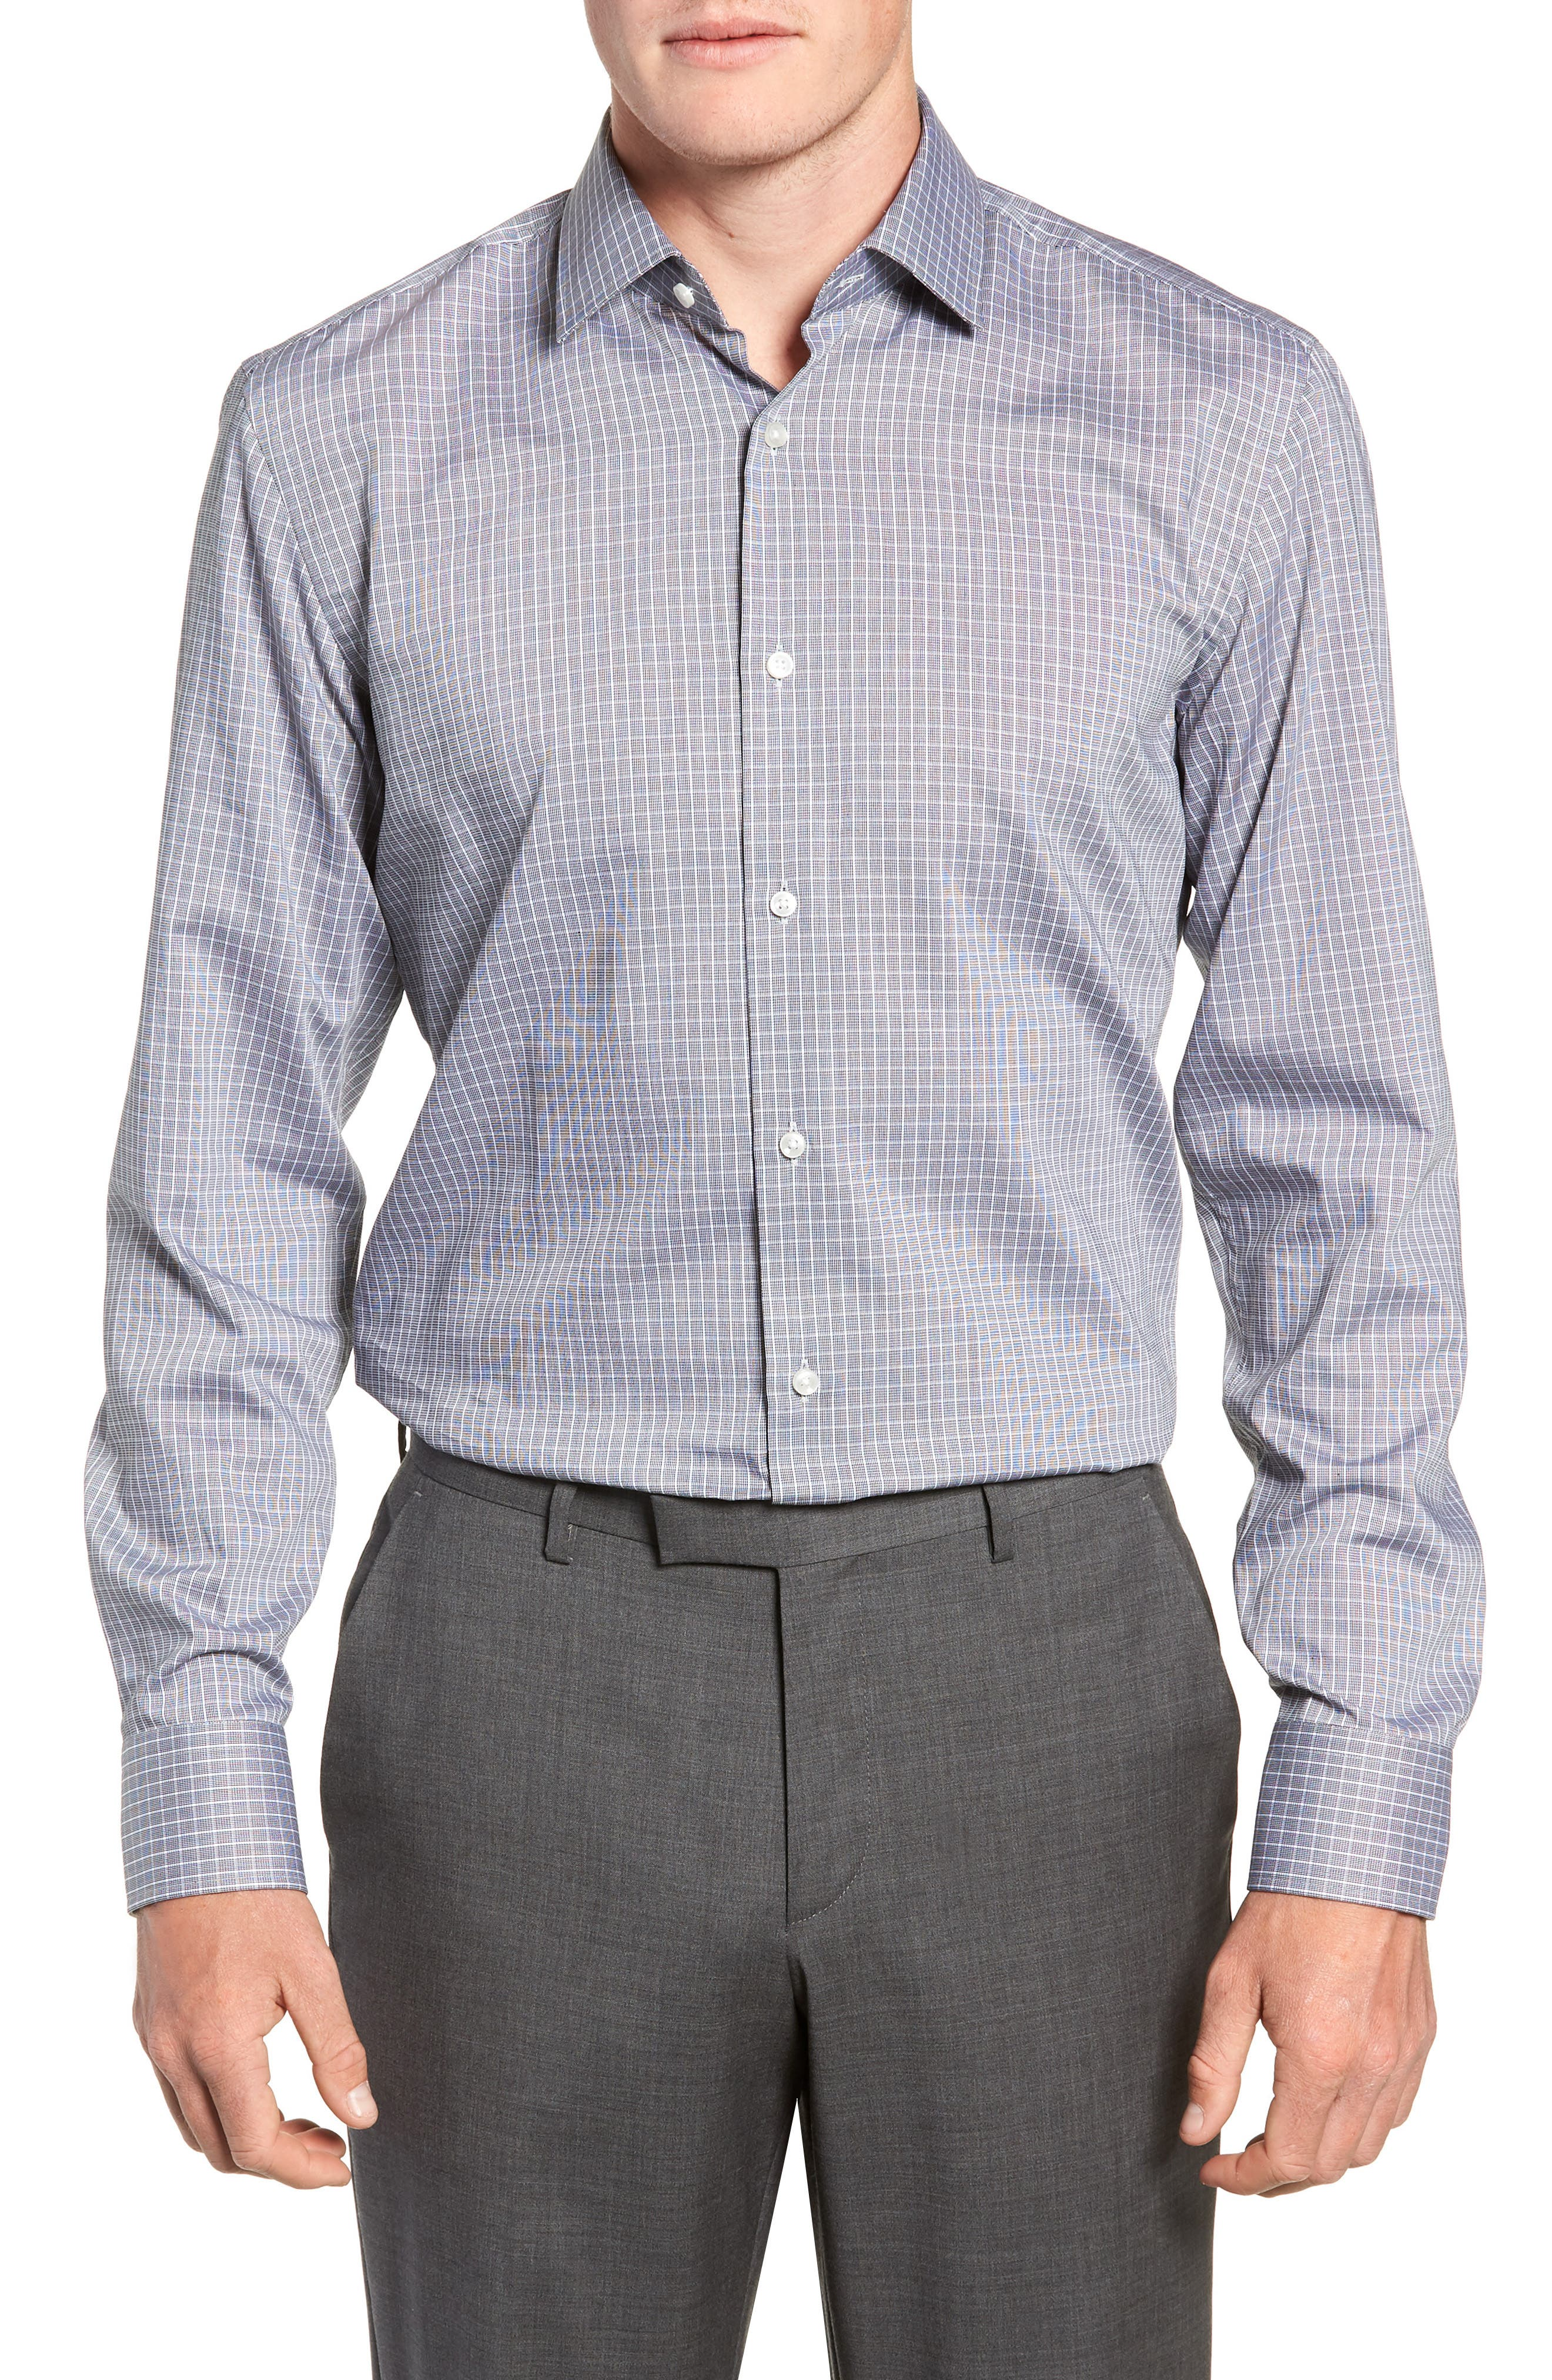 Jenno Trim Fit Check Dress Shirt,                         Main,                         color, 003